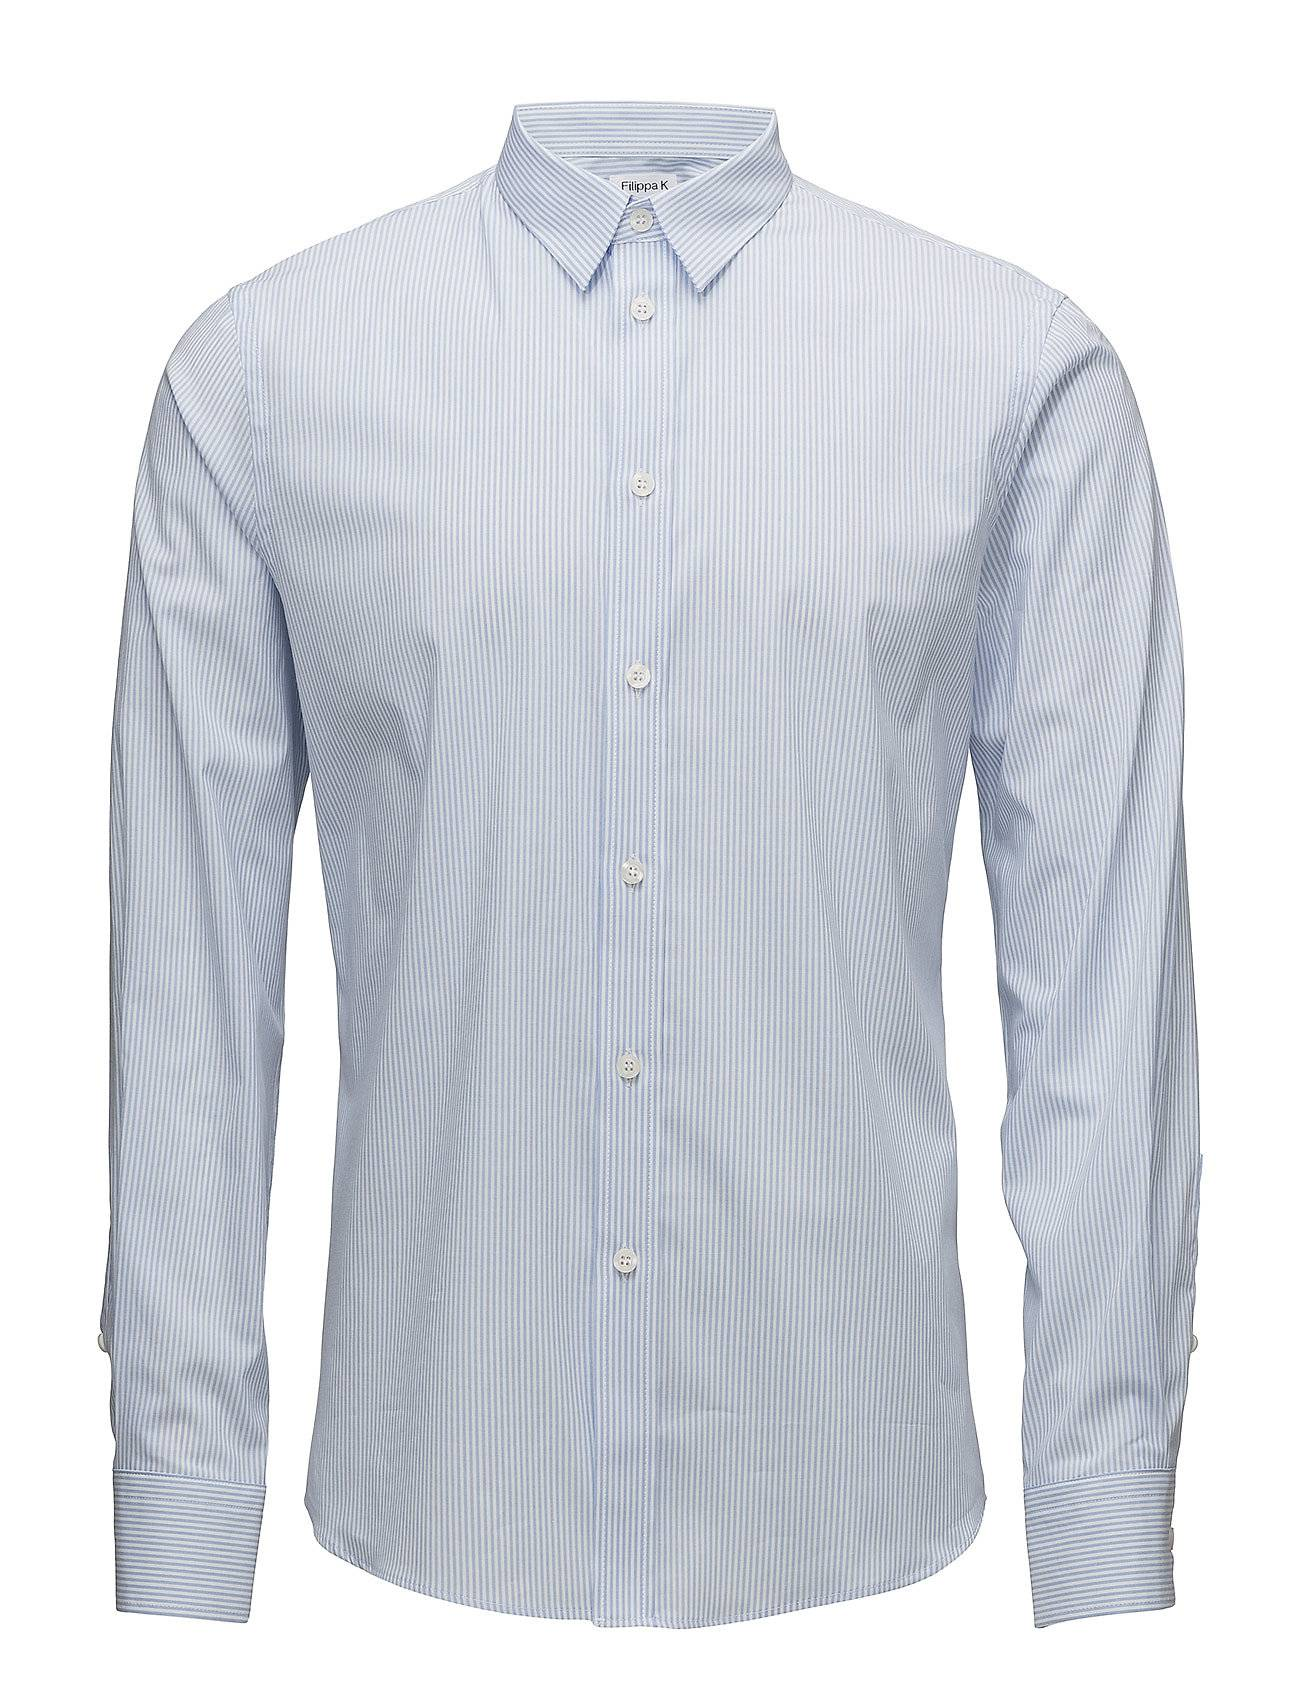 Filippa K M. Pierre Stretch Shirt